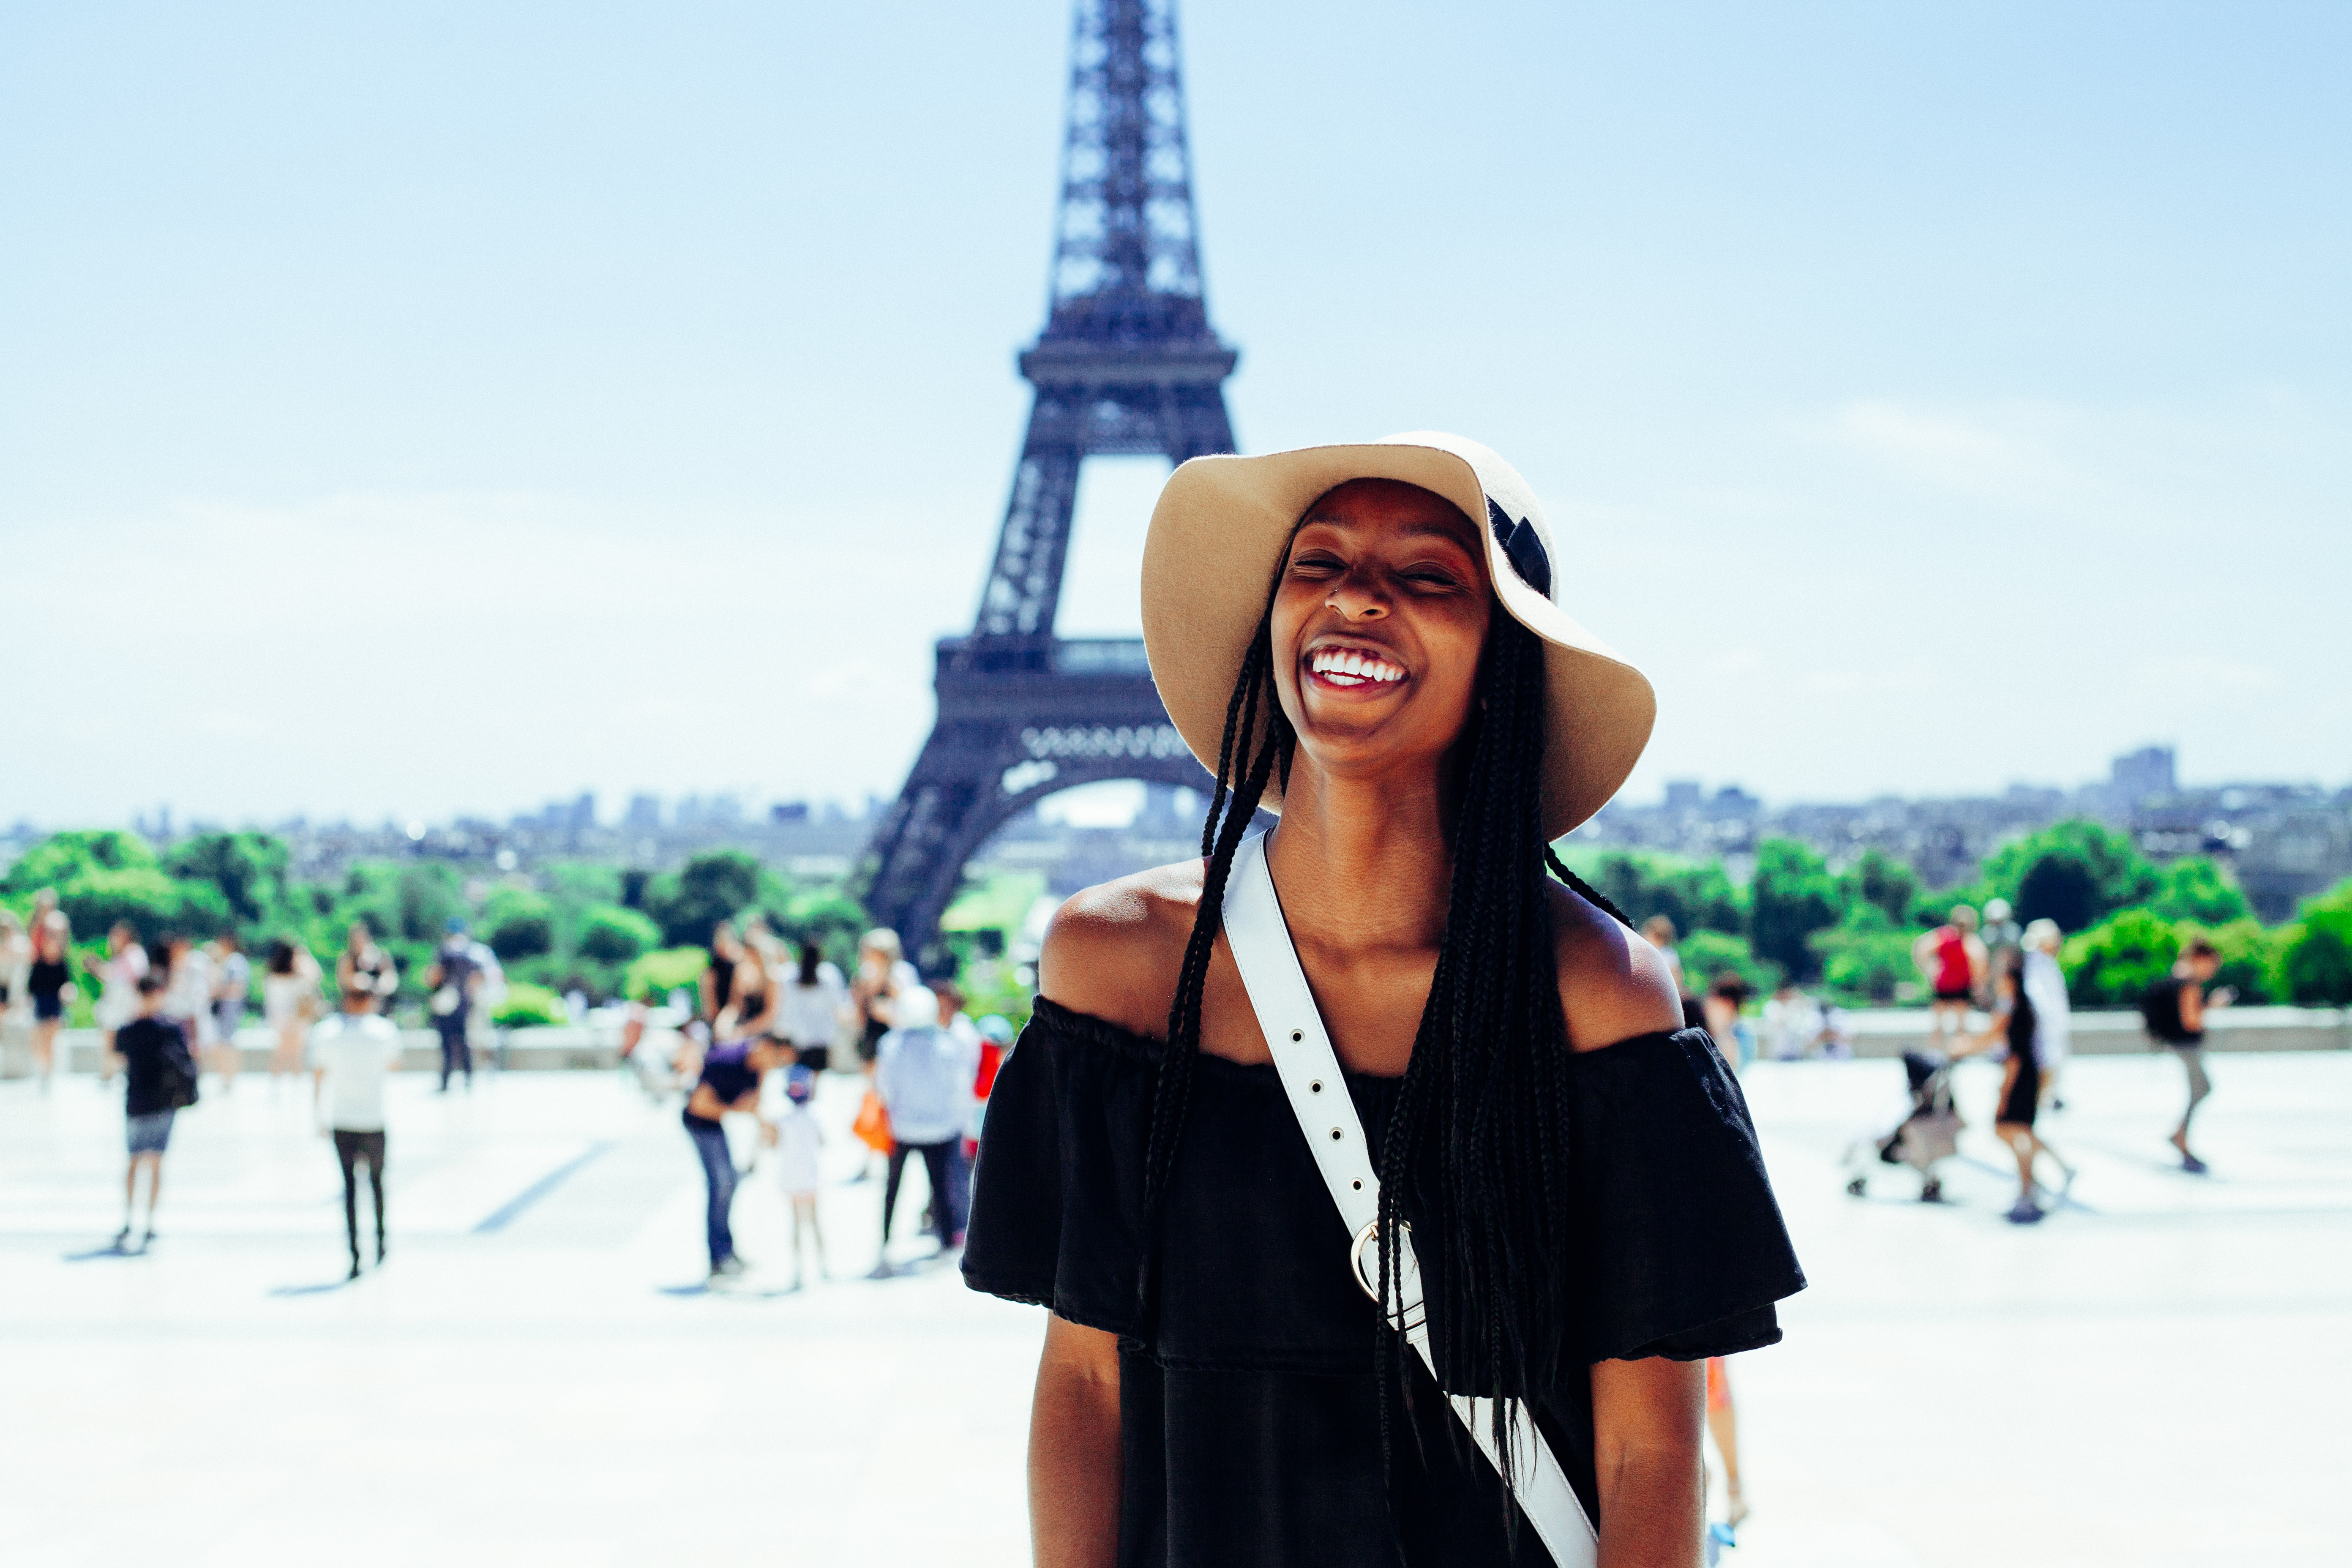 Girl smiling in front of the Eiffel Tower in Paris, France